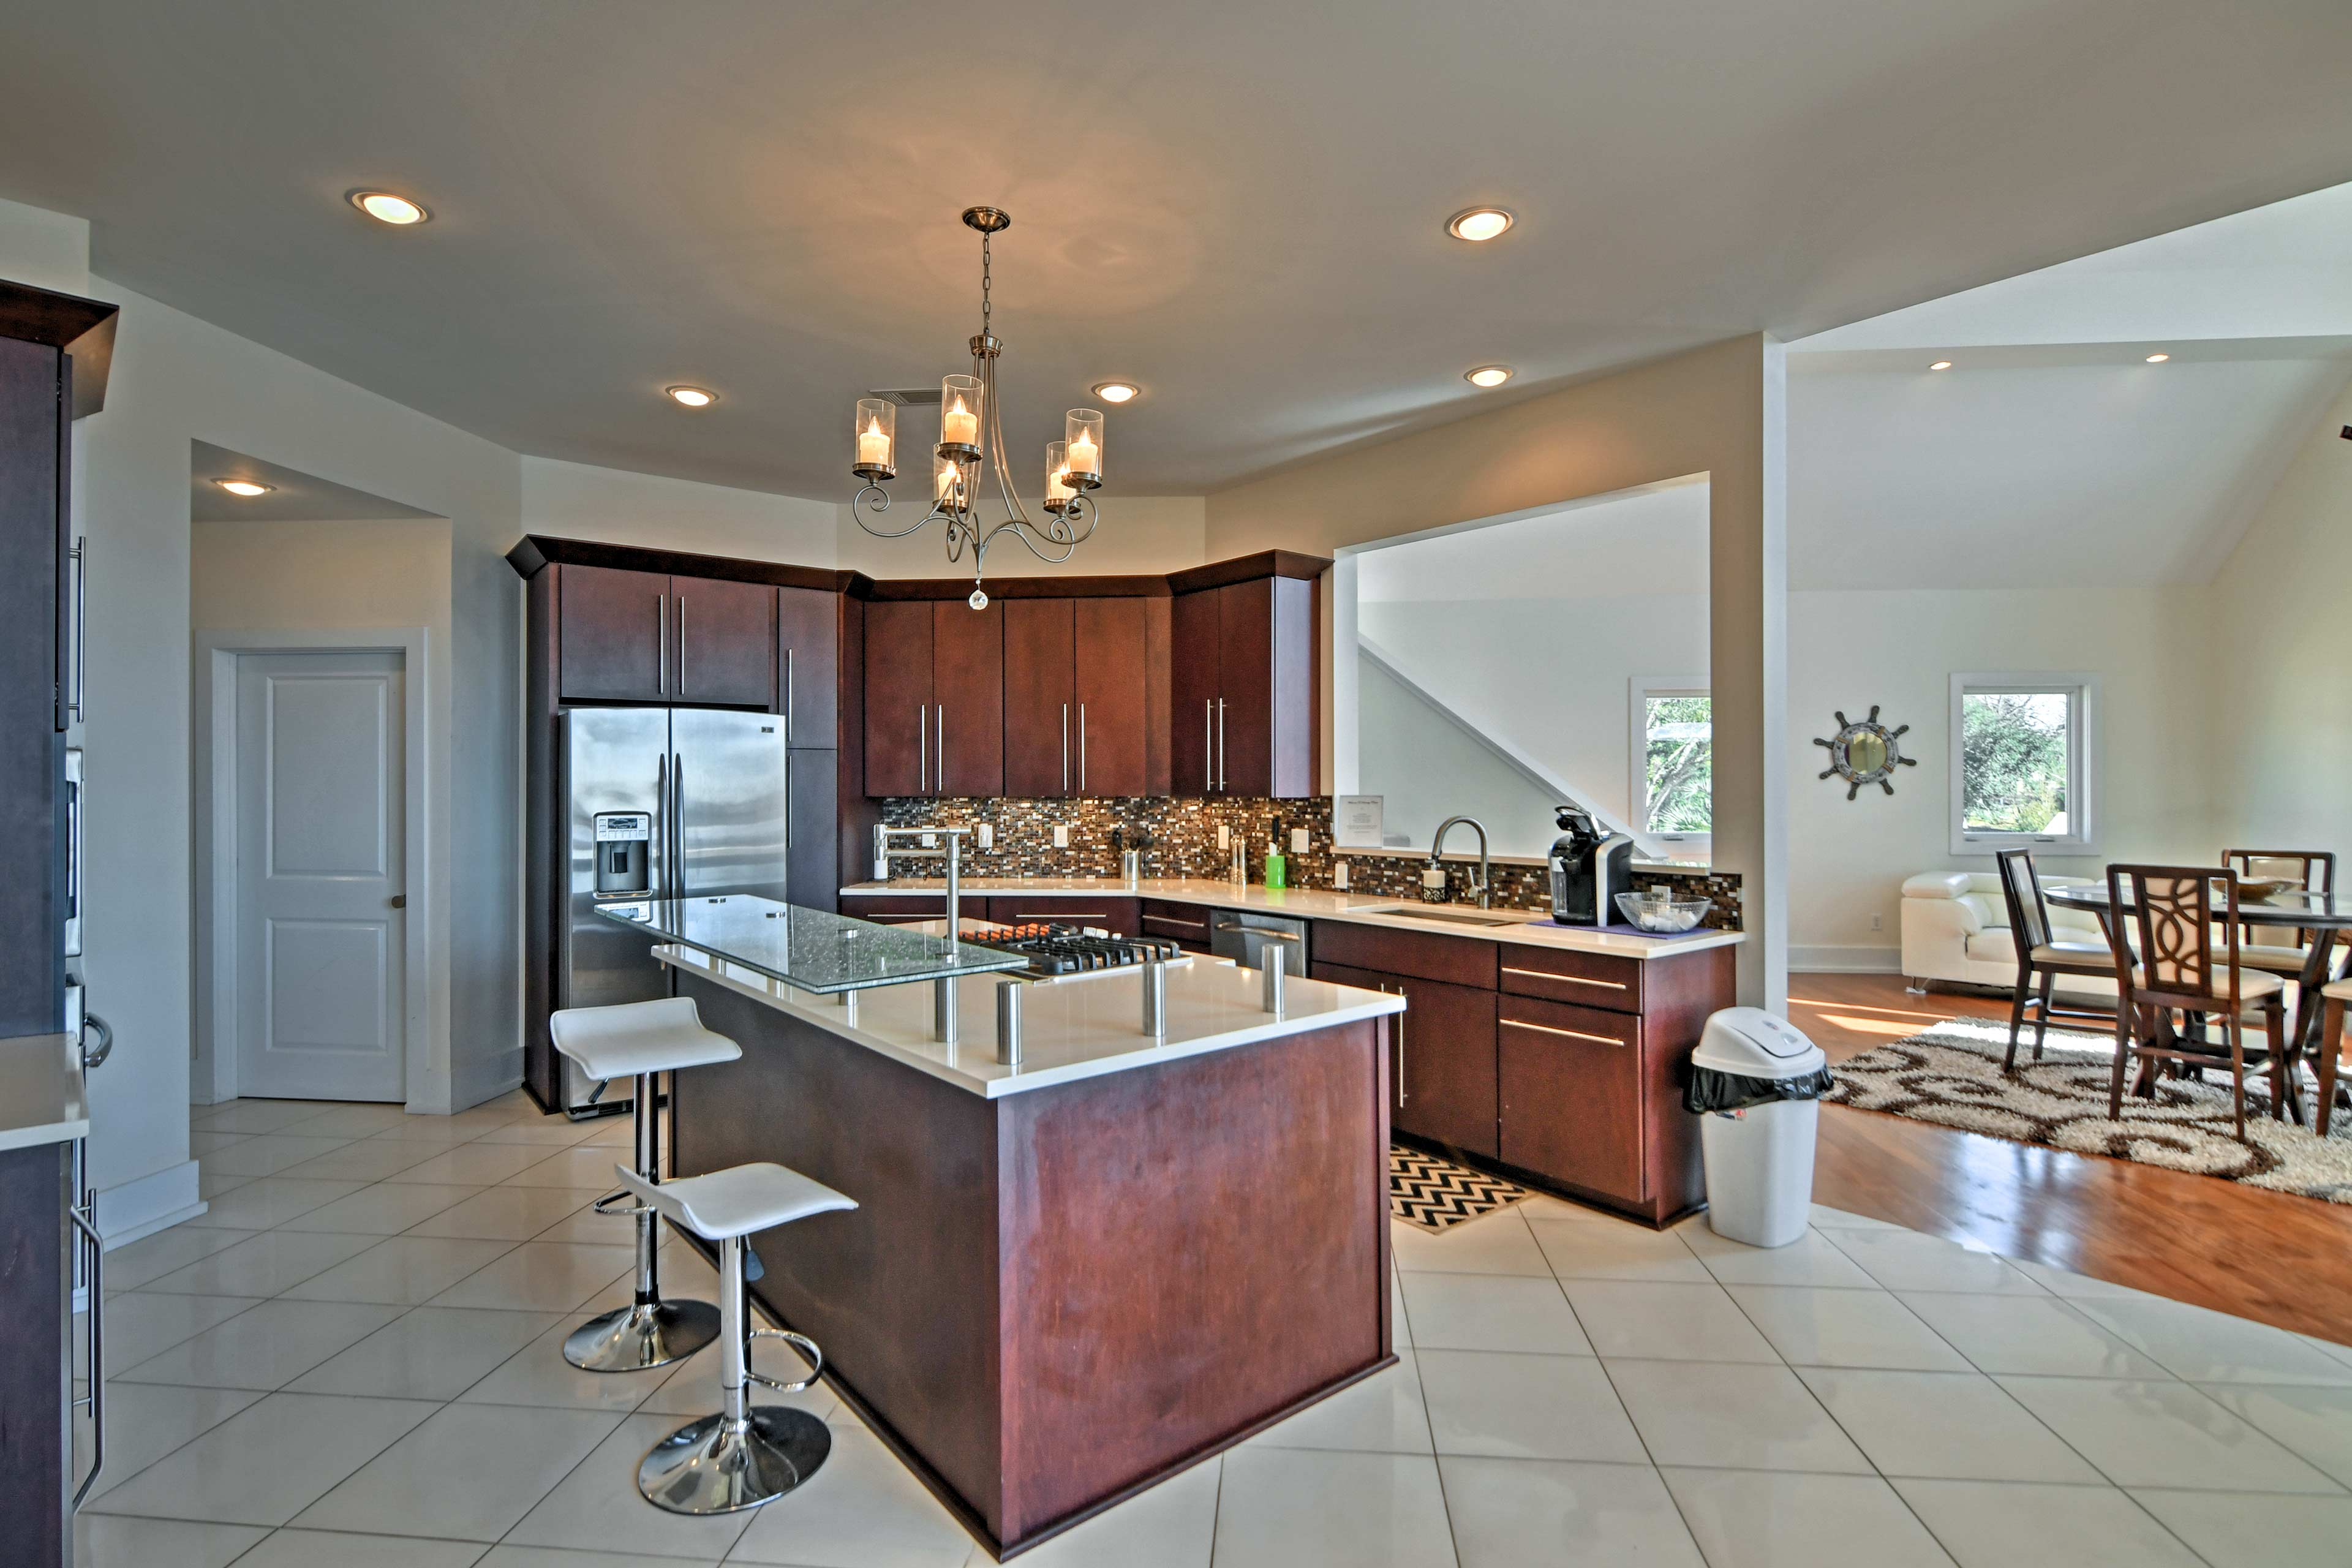 The fully equipped kitchen is a chef's dream.